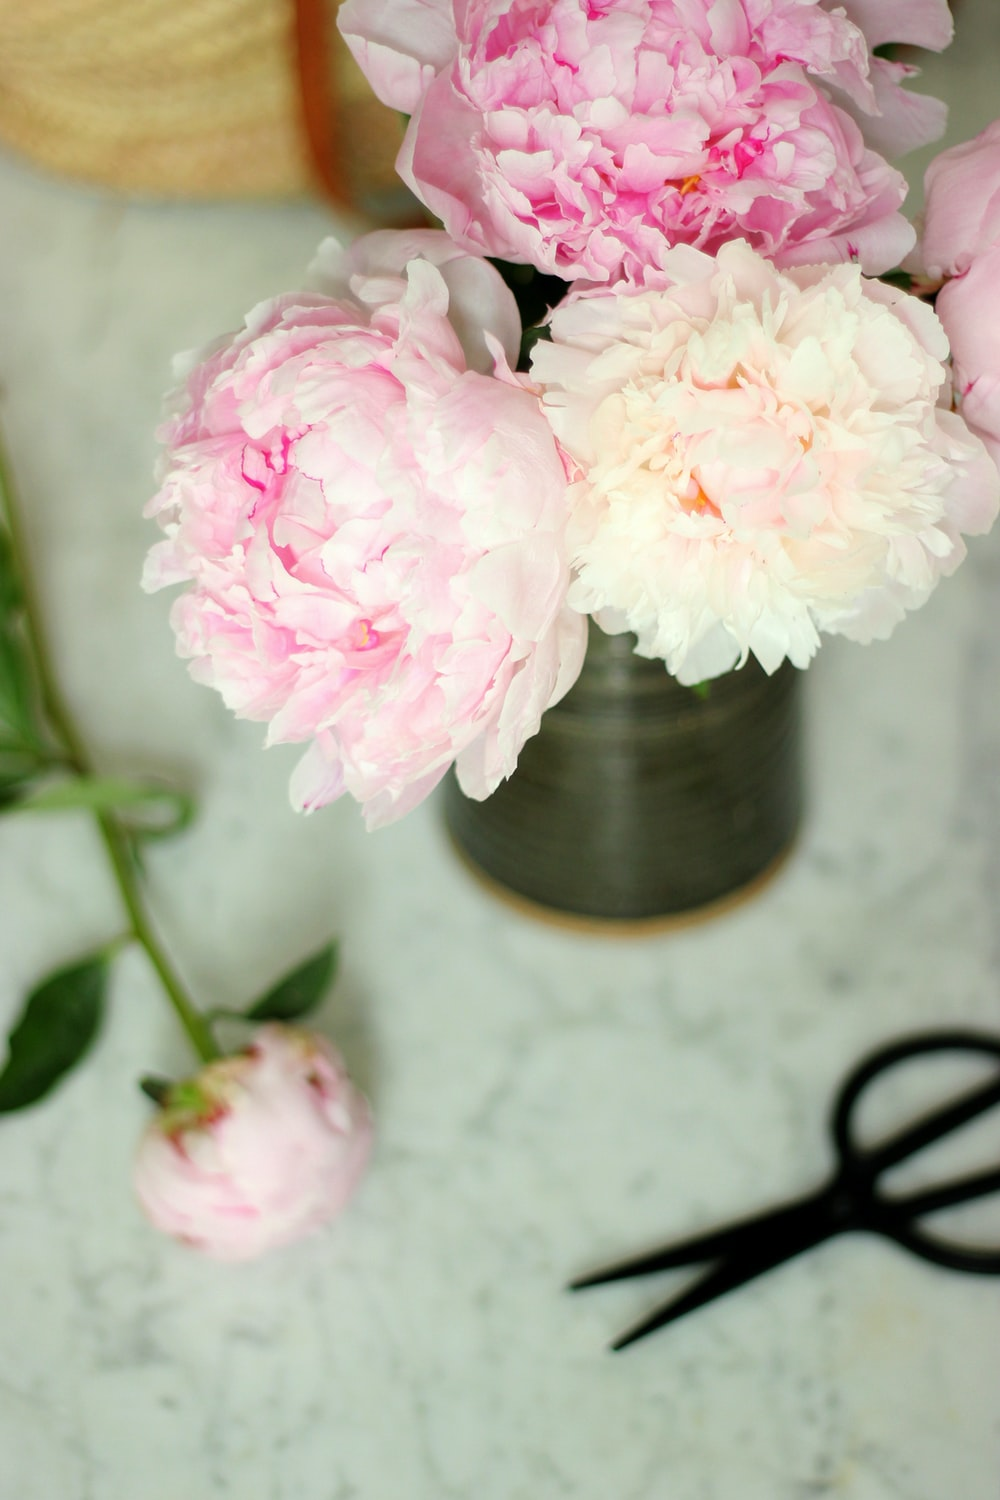 Bright flower arrangement pictures download free images on unsplash pink and white flowers in vase mightylinksfo